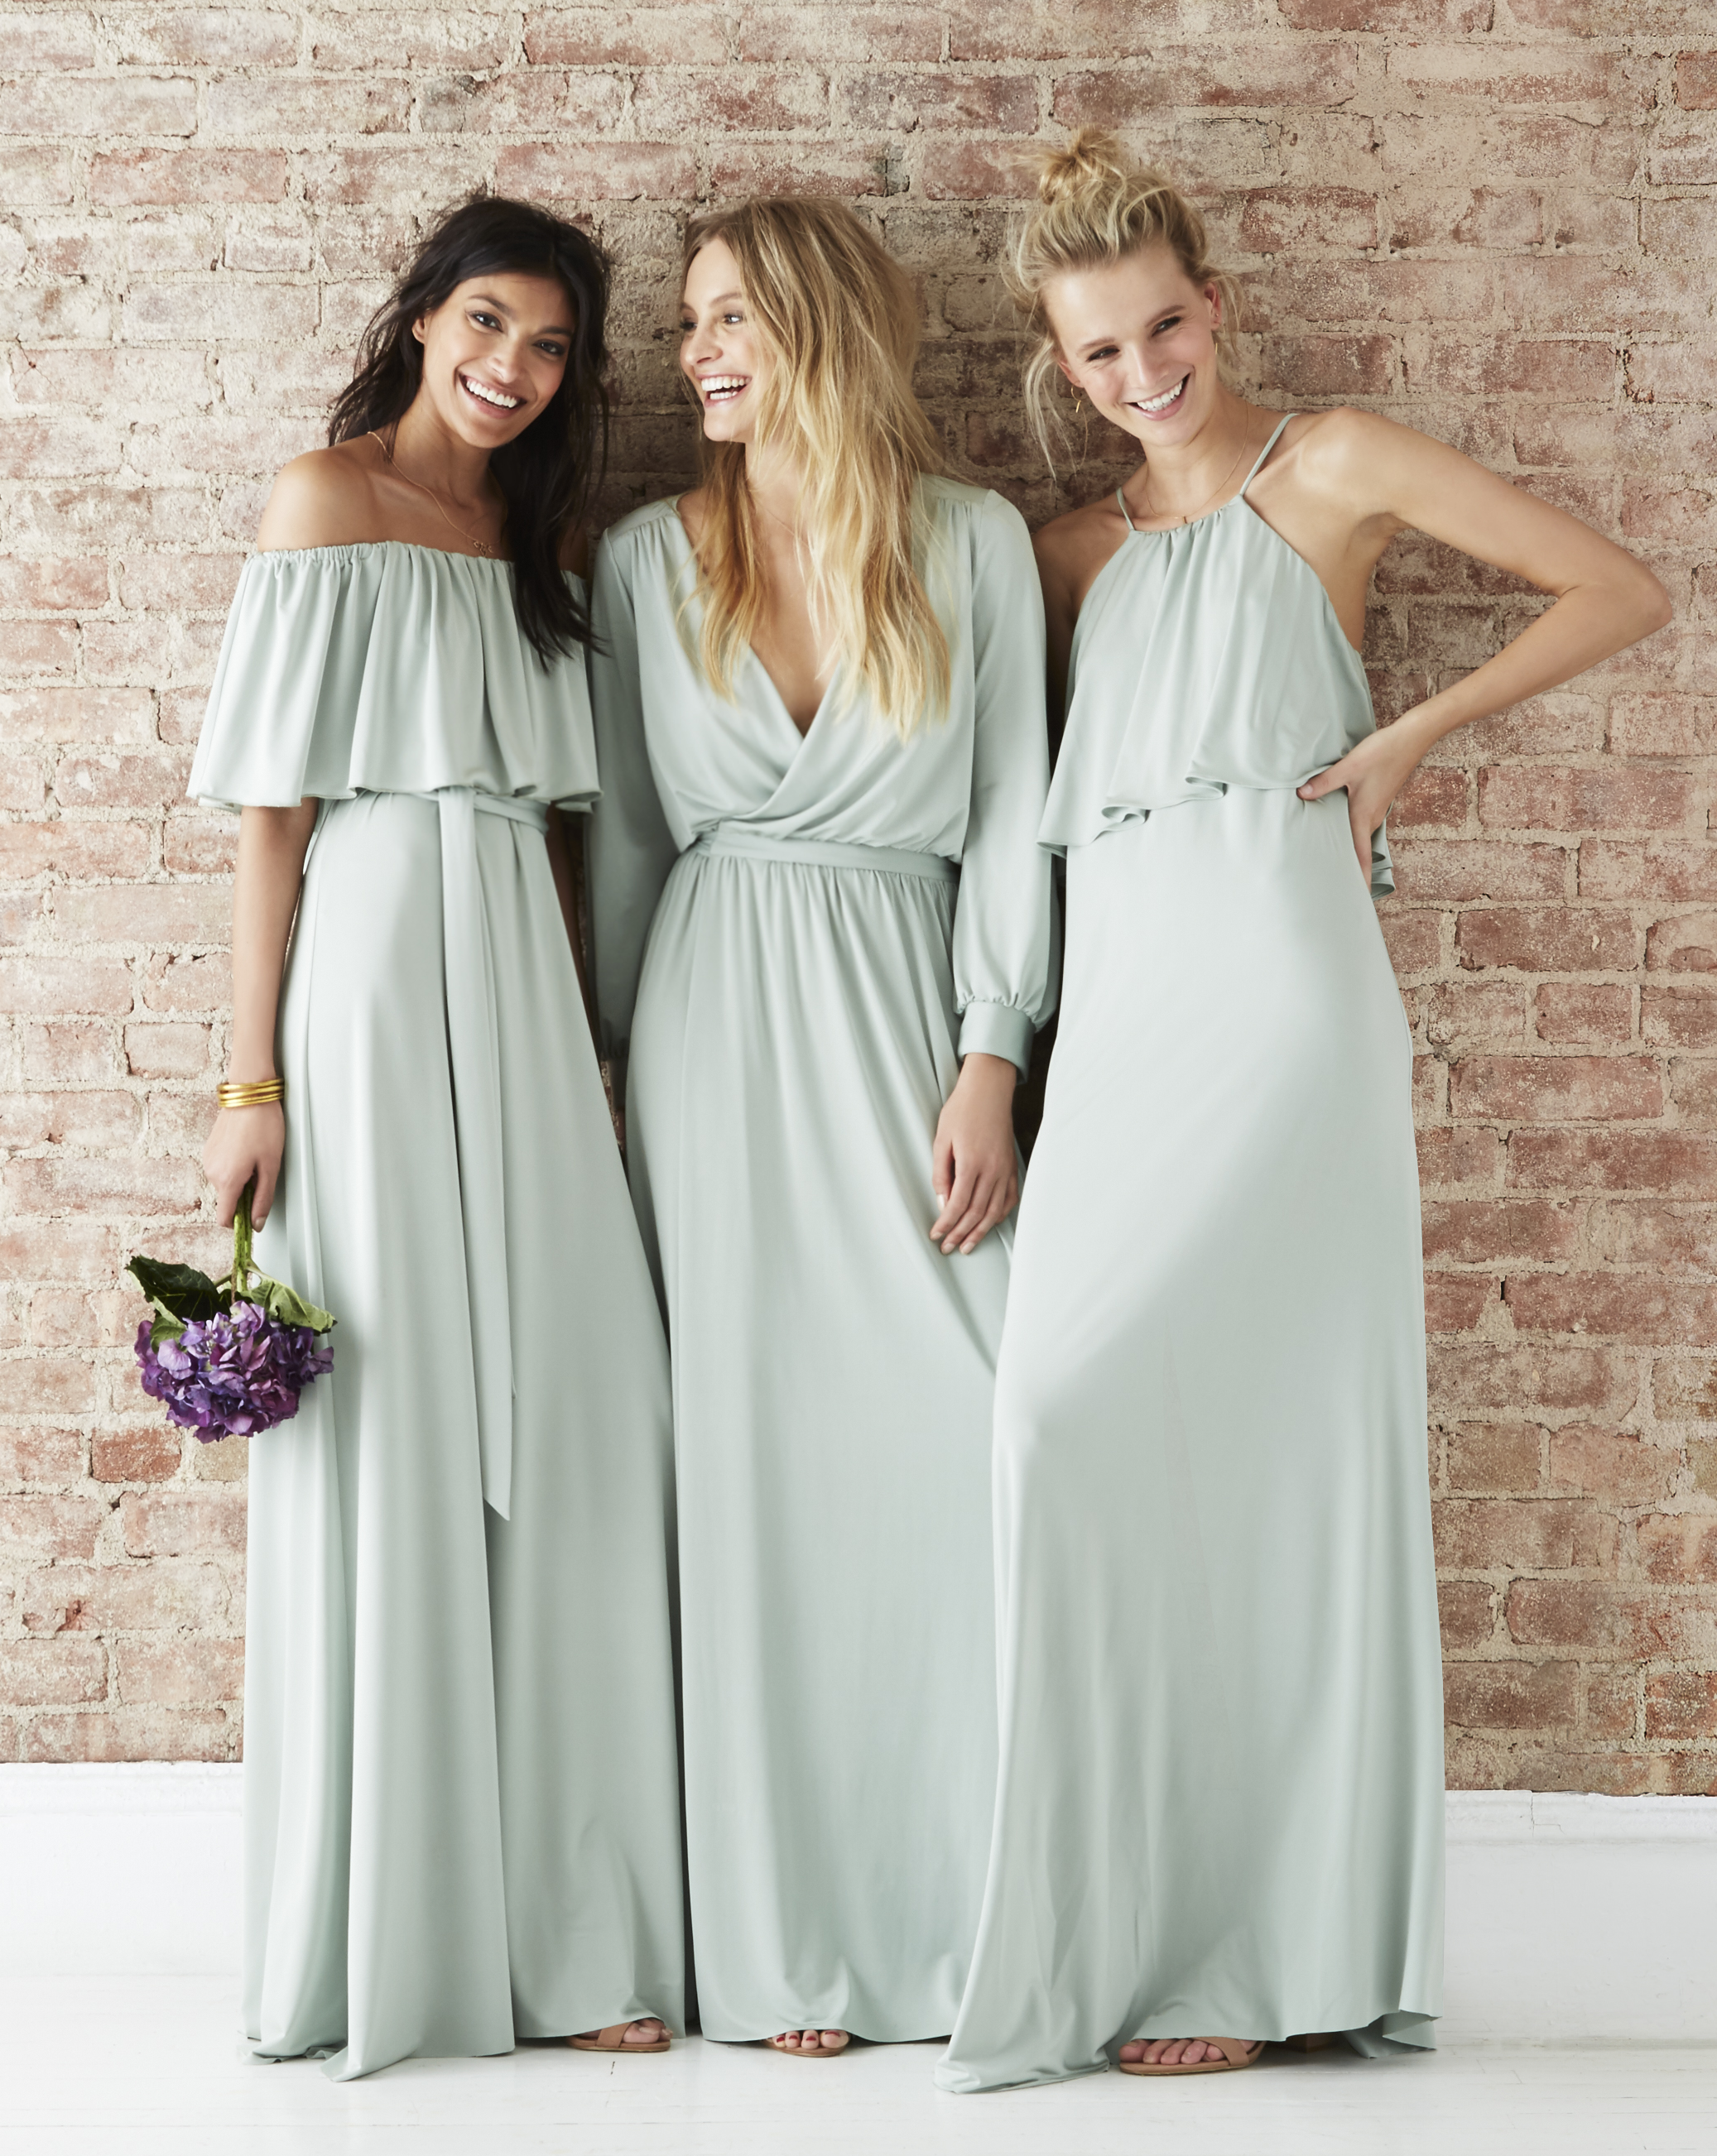 NEW: twobirds Party Collection | Bella Bridesmaids